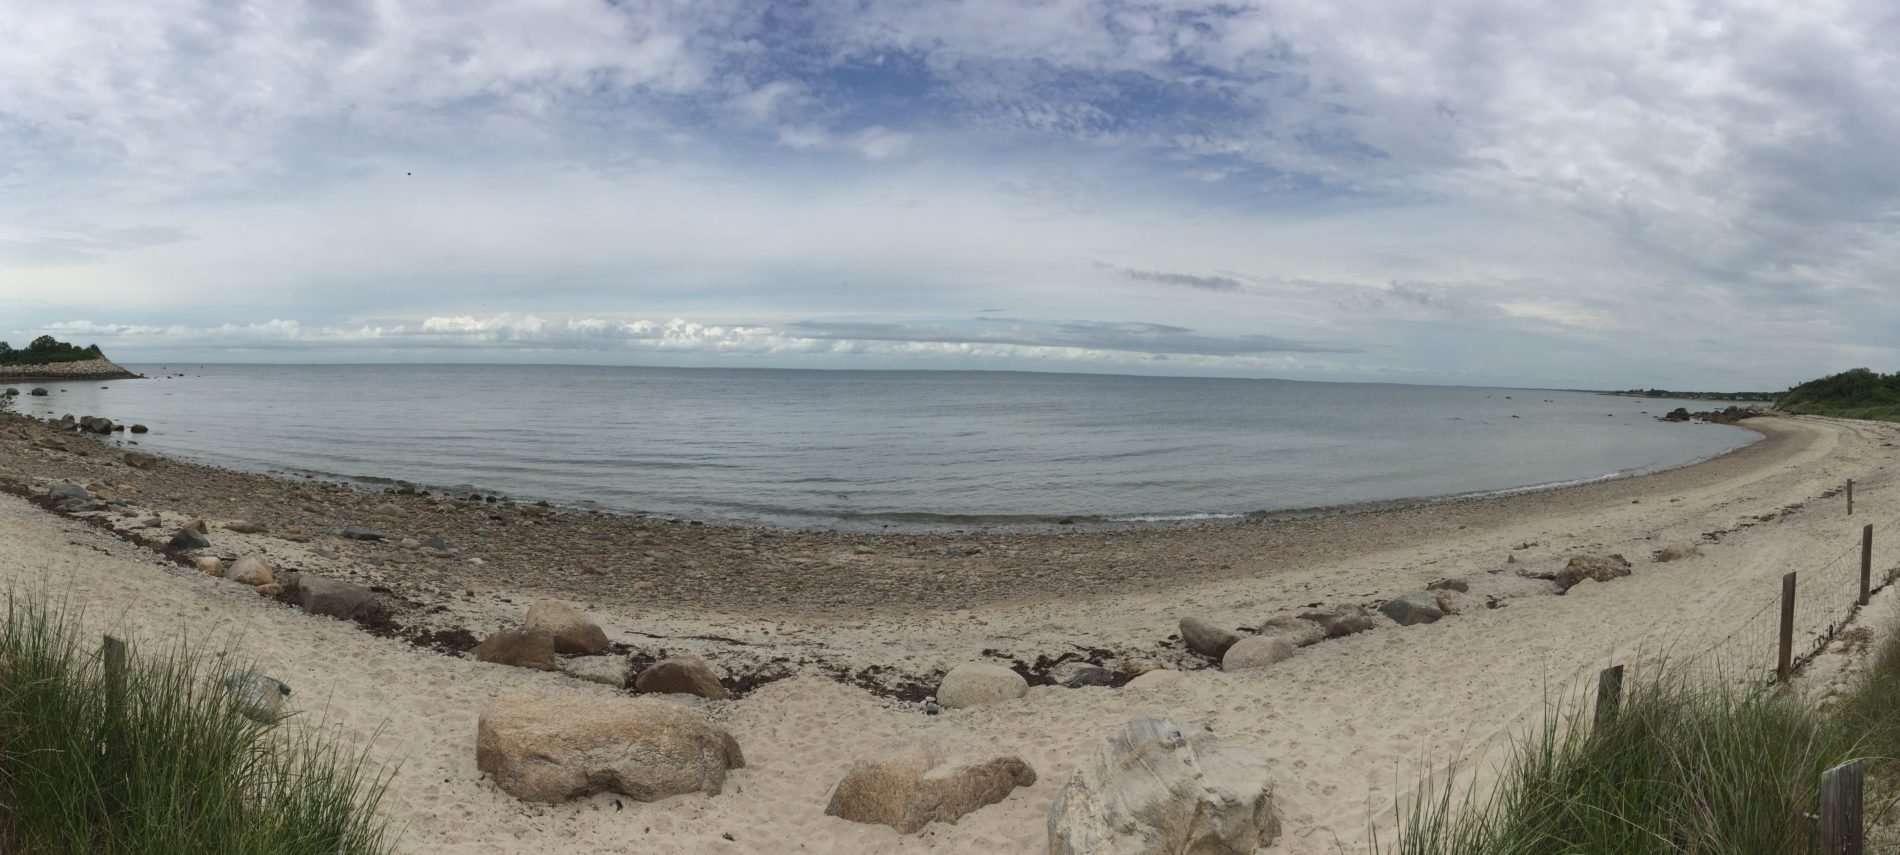 Panoramic view of The Knob beach in Falmouth on an overcast day